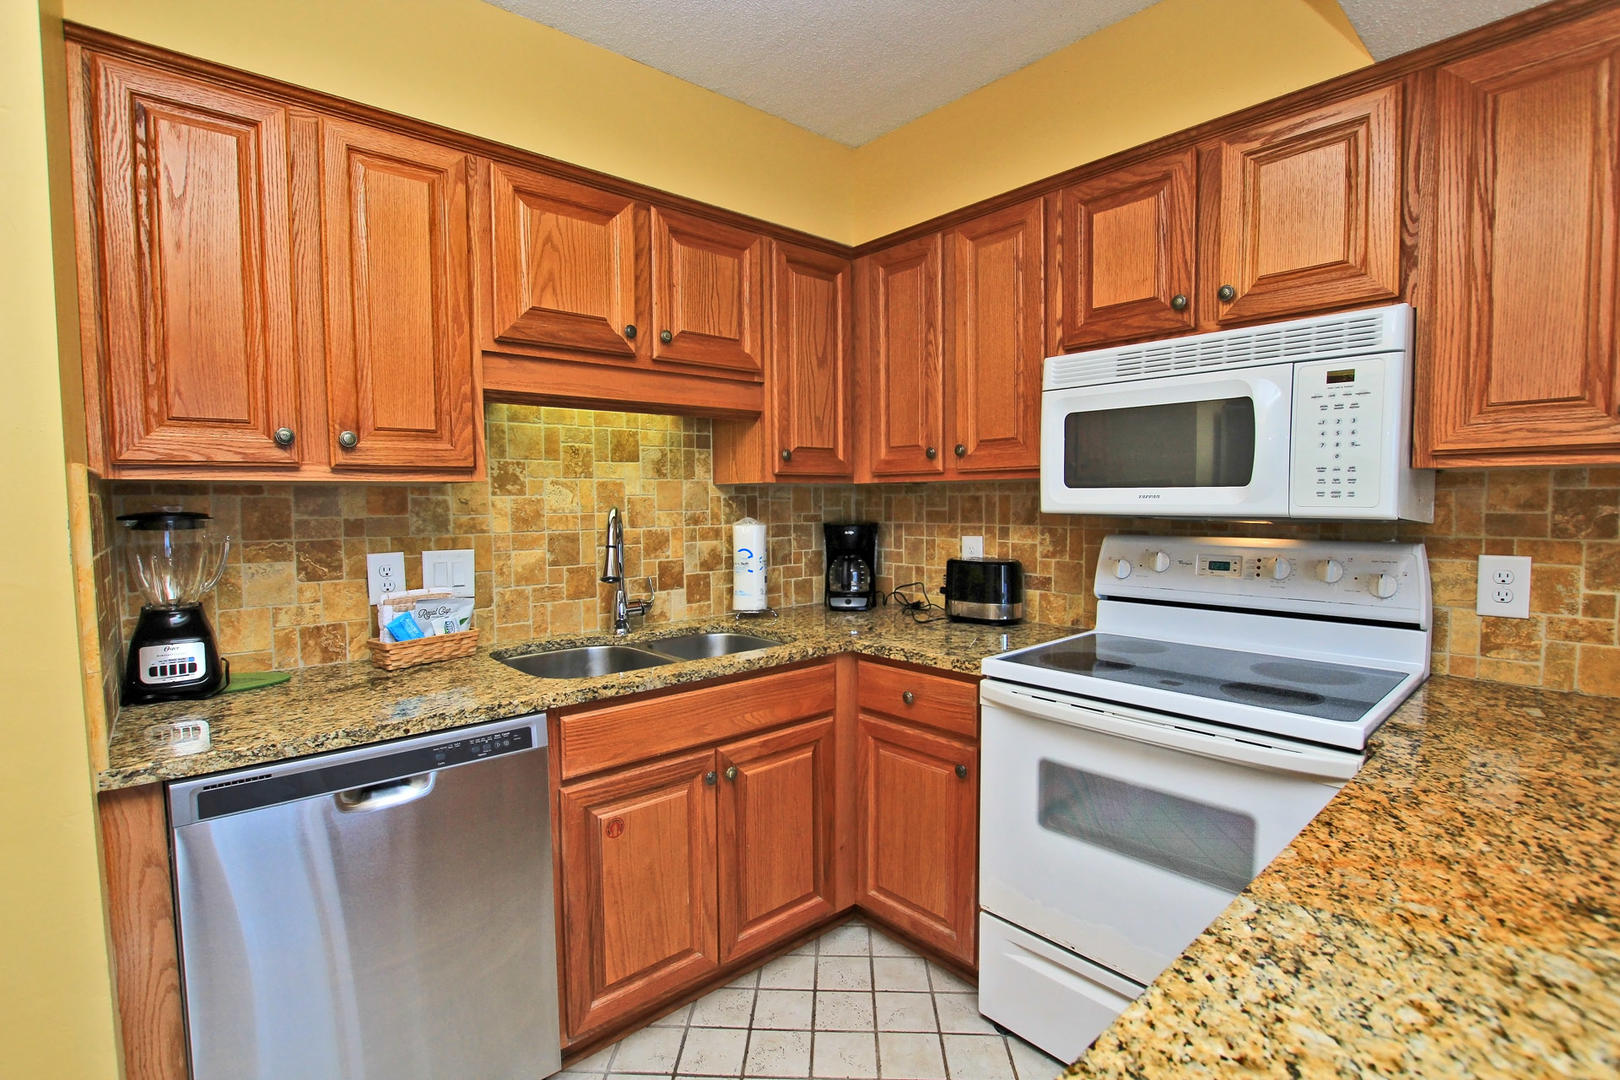 Updated Counter Tops and Cabinets